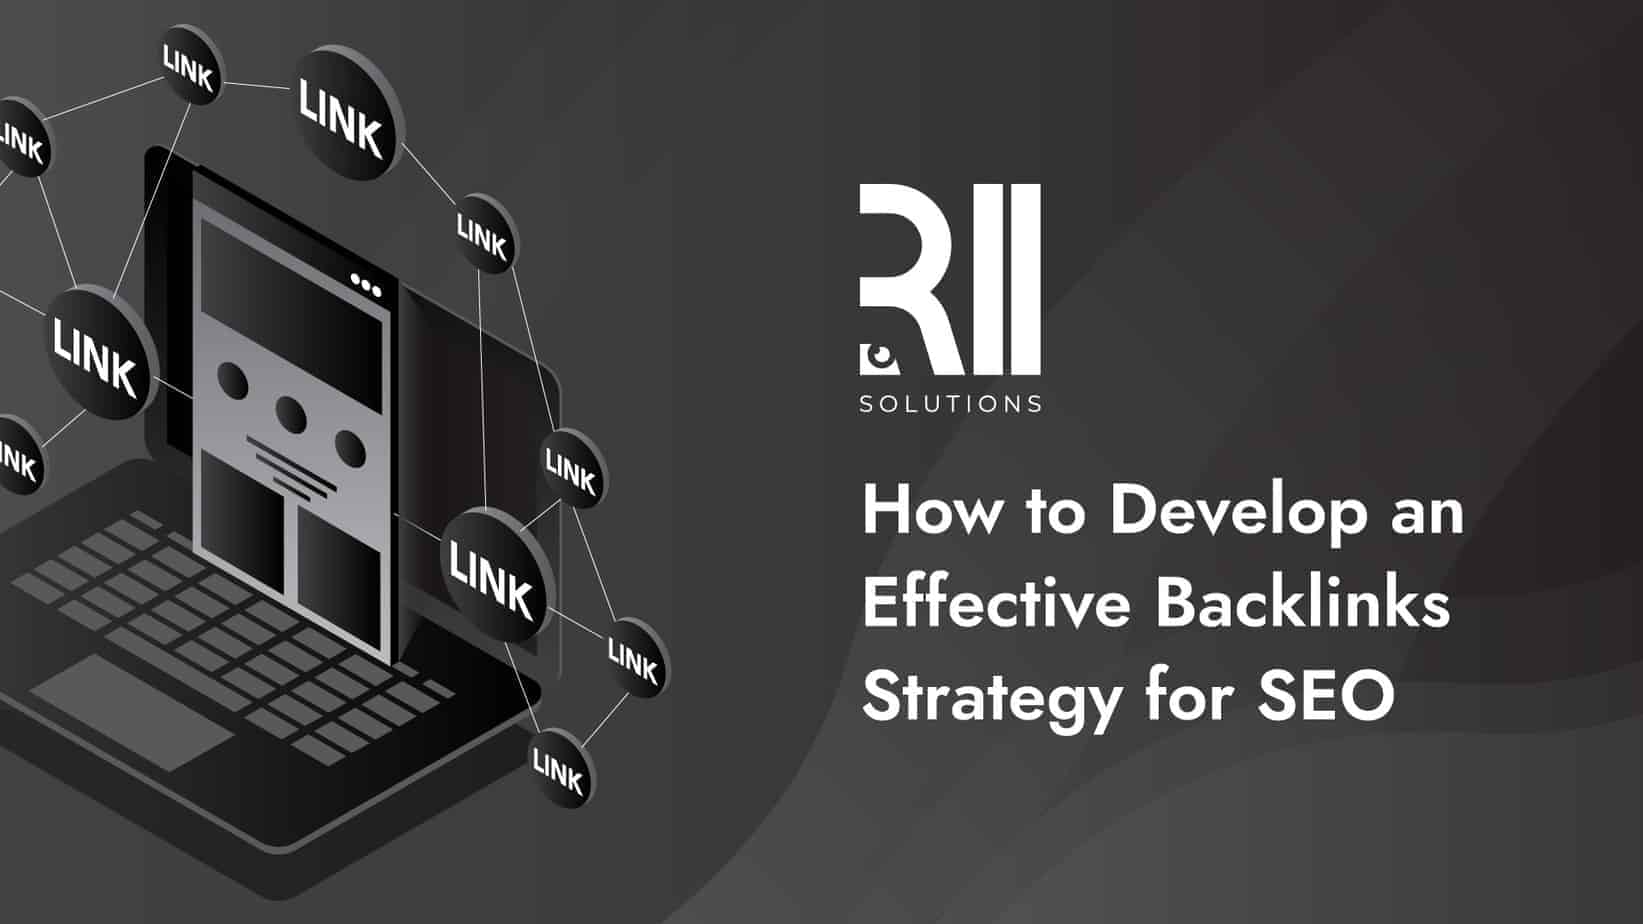 How to Develop an Effective Backlinks Strategy for SEO